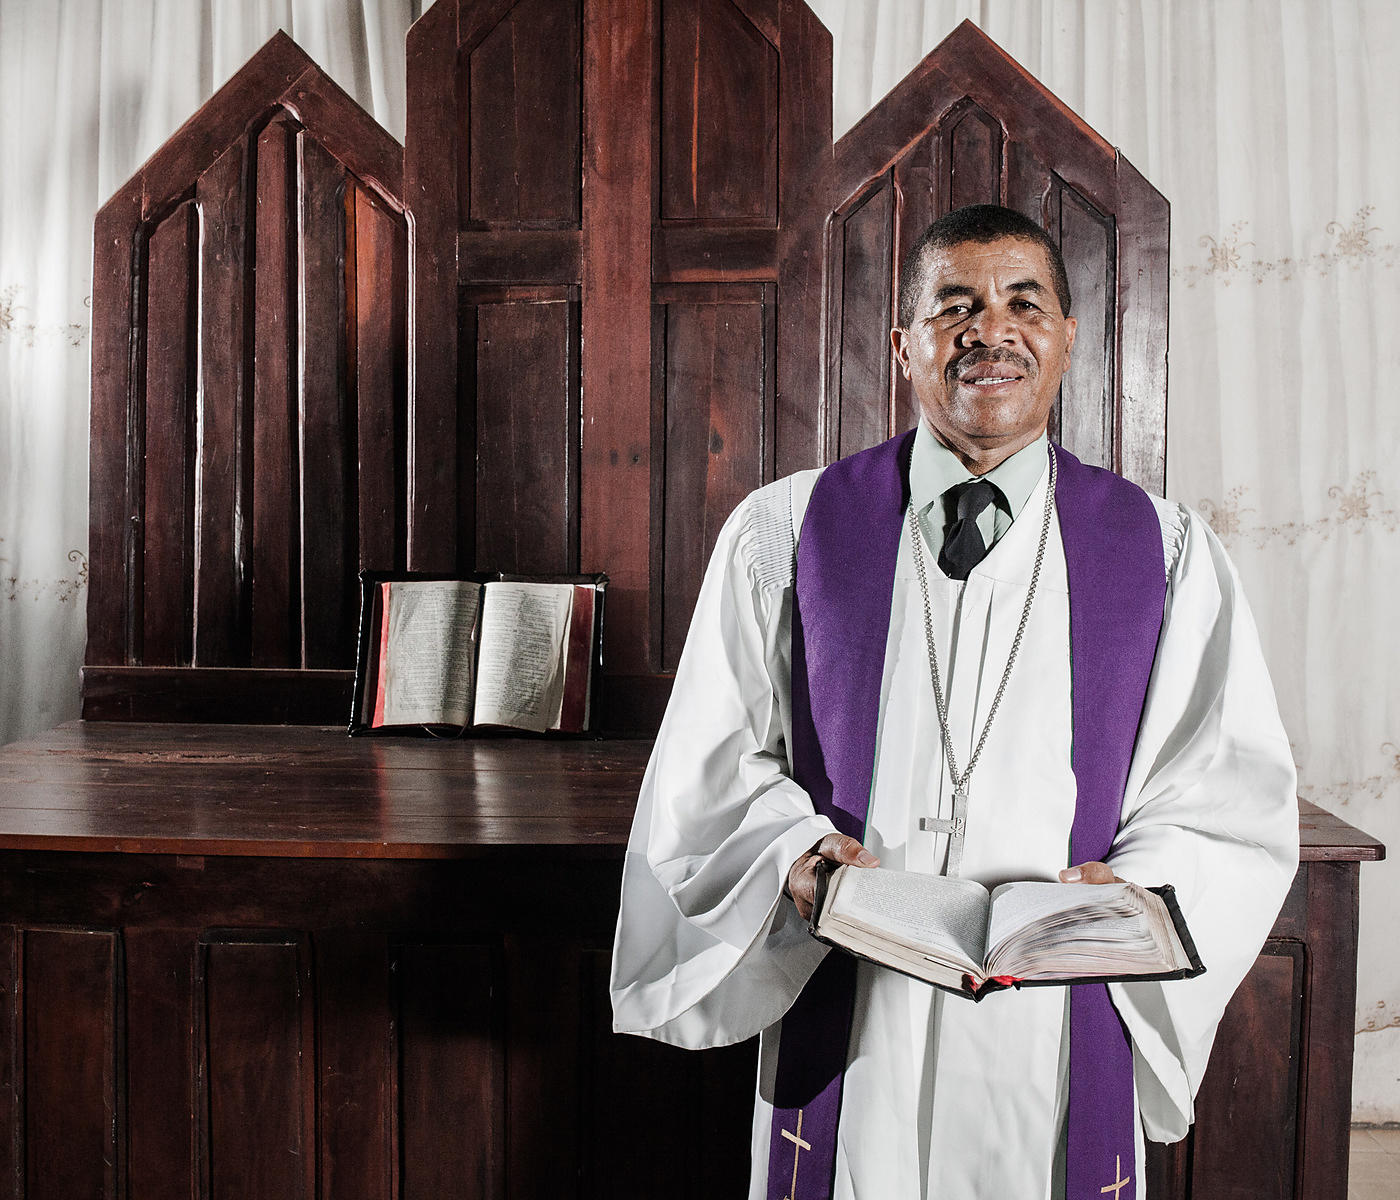 BETIOKY - Mr Mahatoky, married, 57, is a pastor of the Lutheran Protestant Church since 1985. He is also President of the Sou...